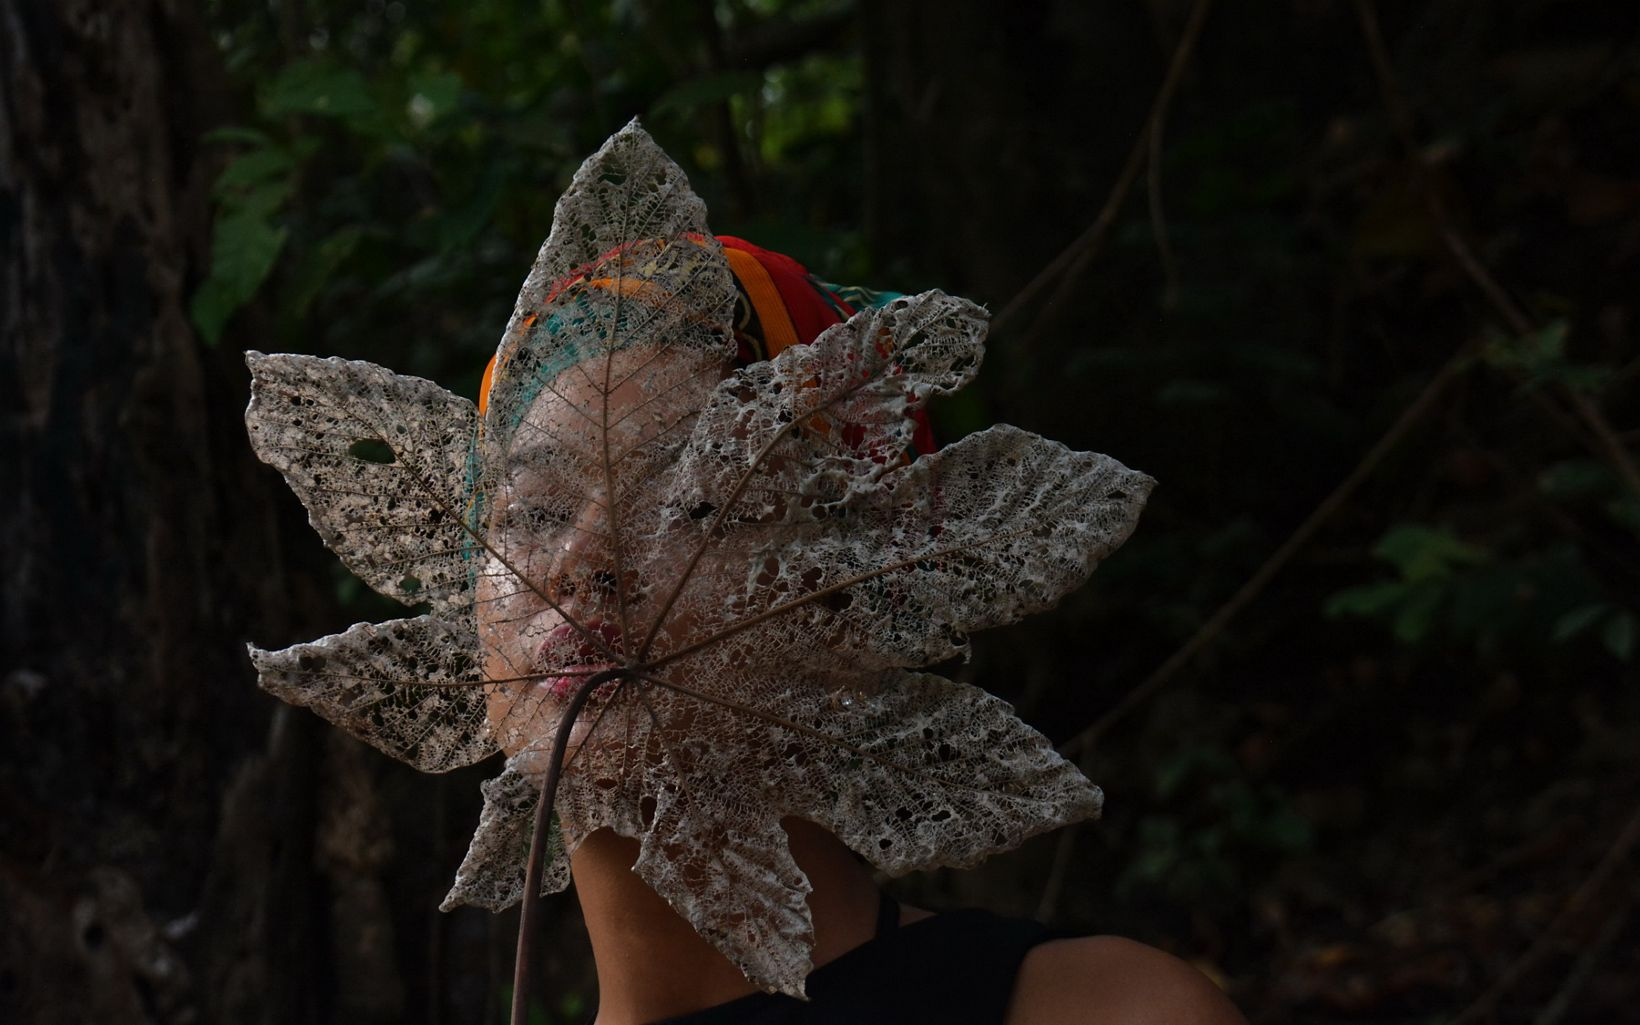 A woman holding the ribs of a dry leaf in Colombia.